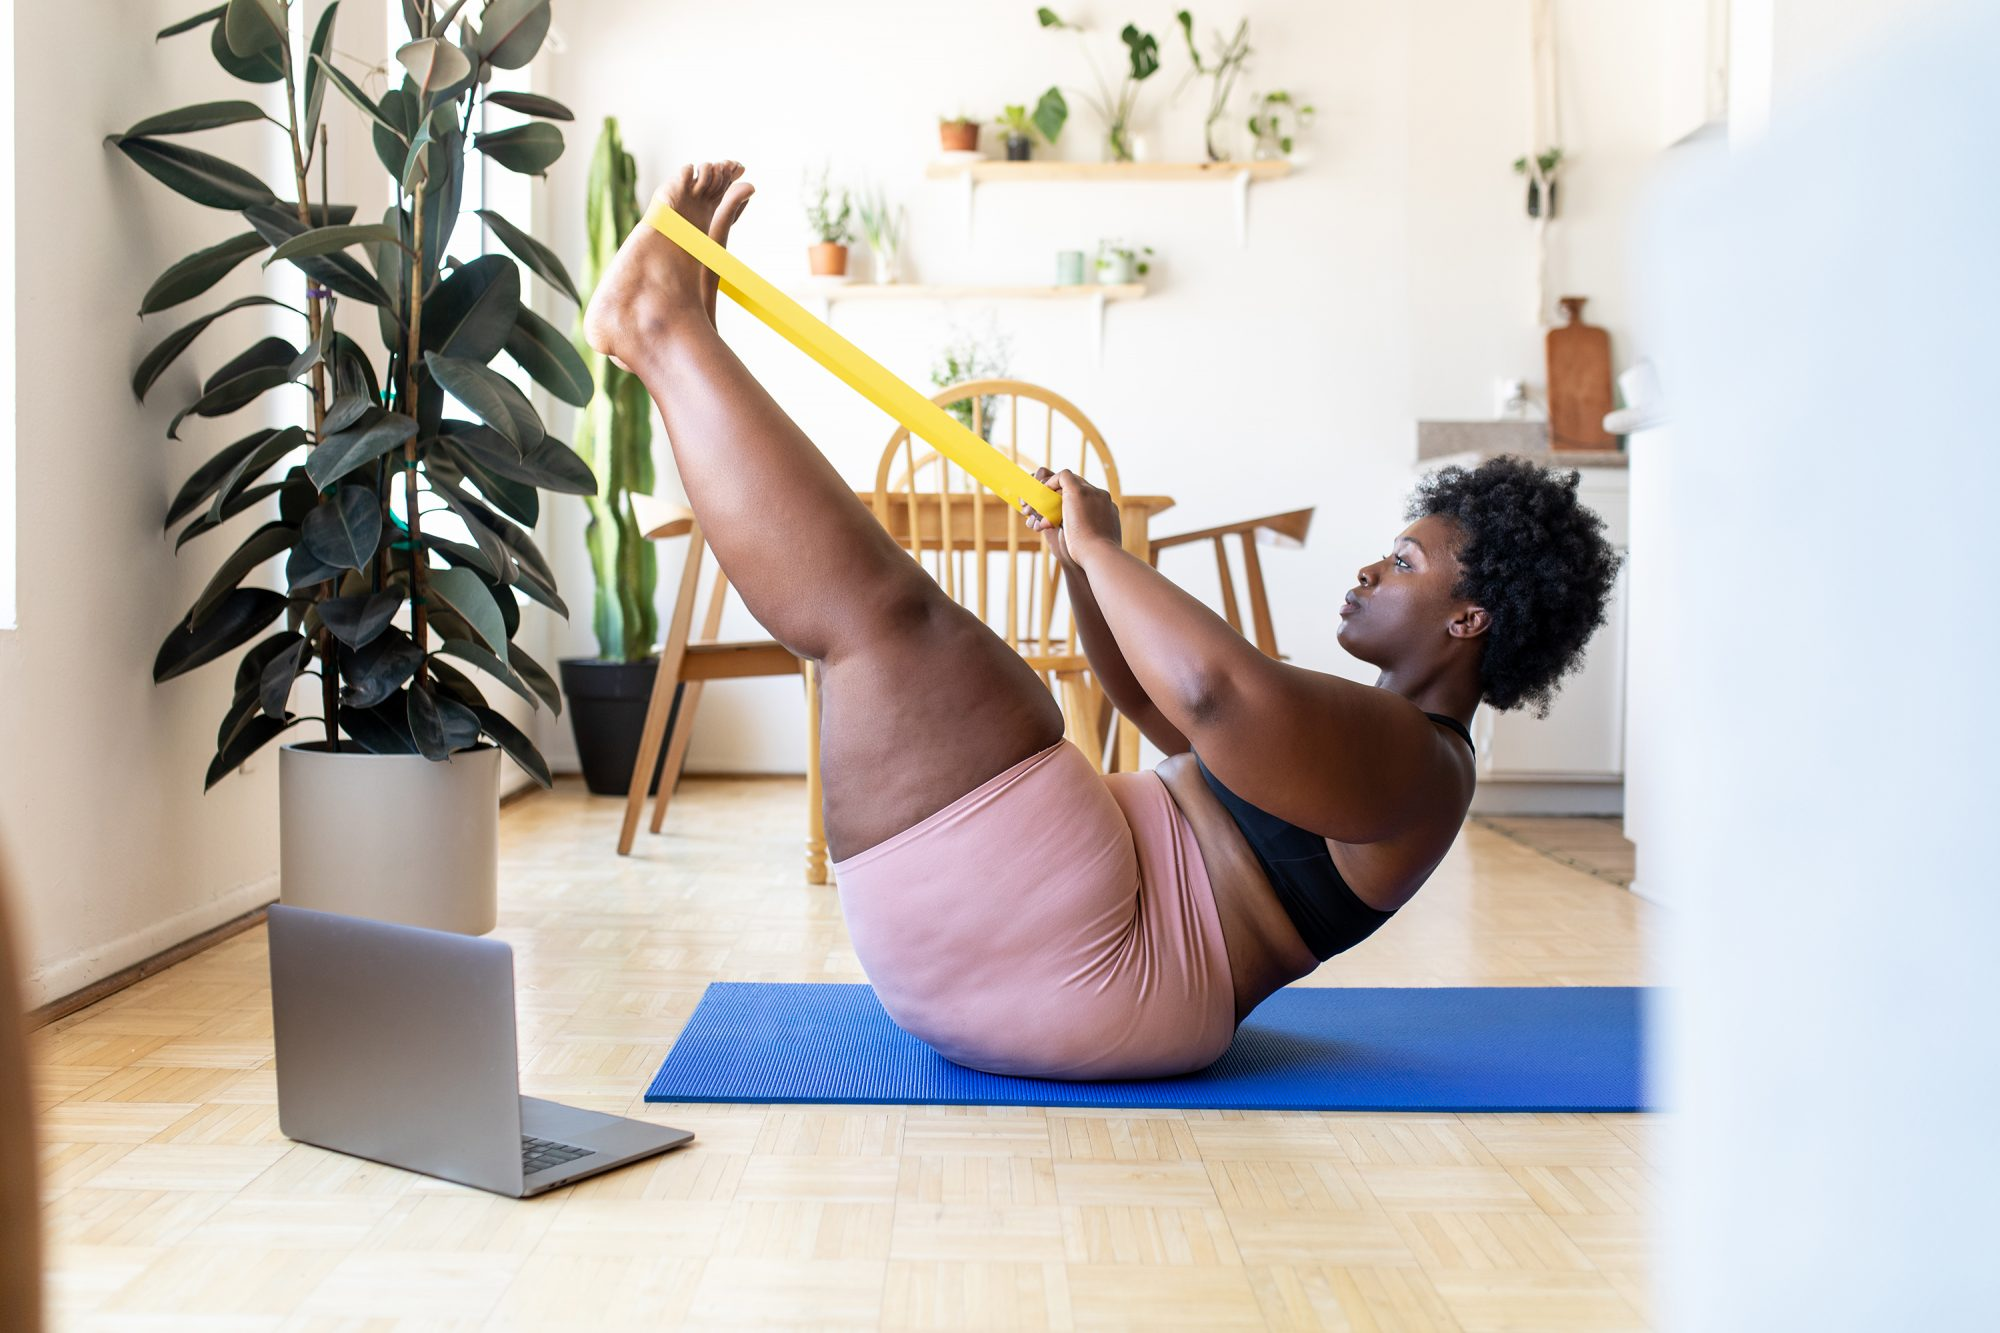 What Is Restorative Yoga? Restorative Yoga Meaning, Benefits, and Easy Poses to Try